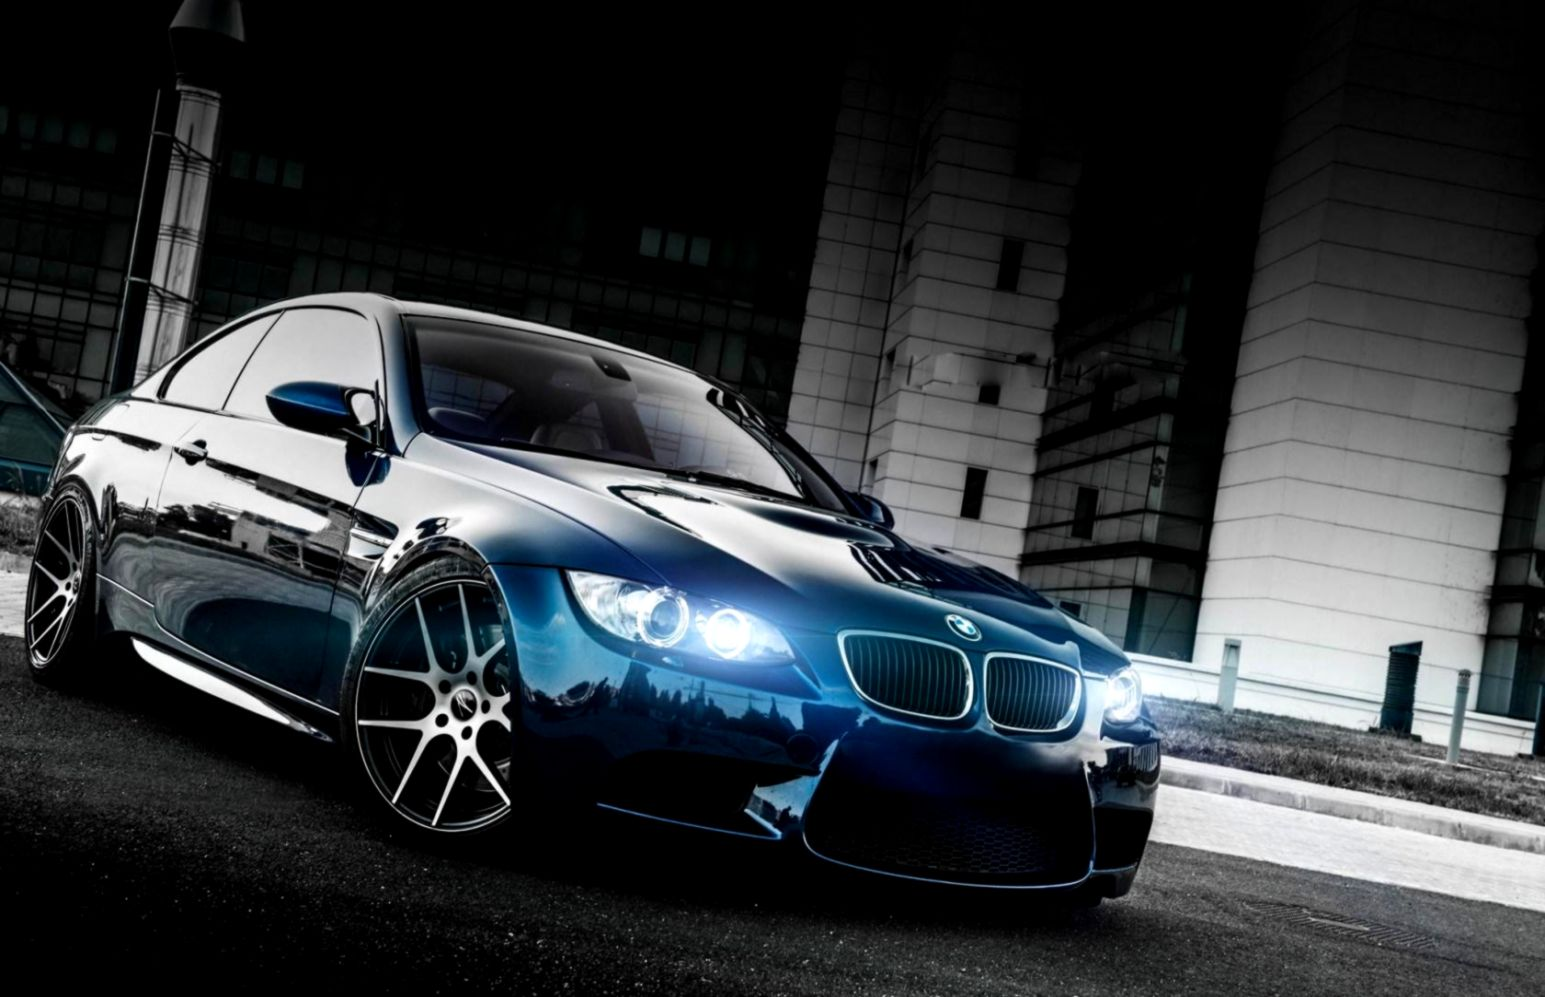 Bmw M3 E92 White Car Lights Tuning Hd Wallpaper Wallpapers